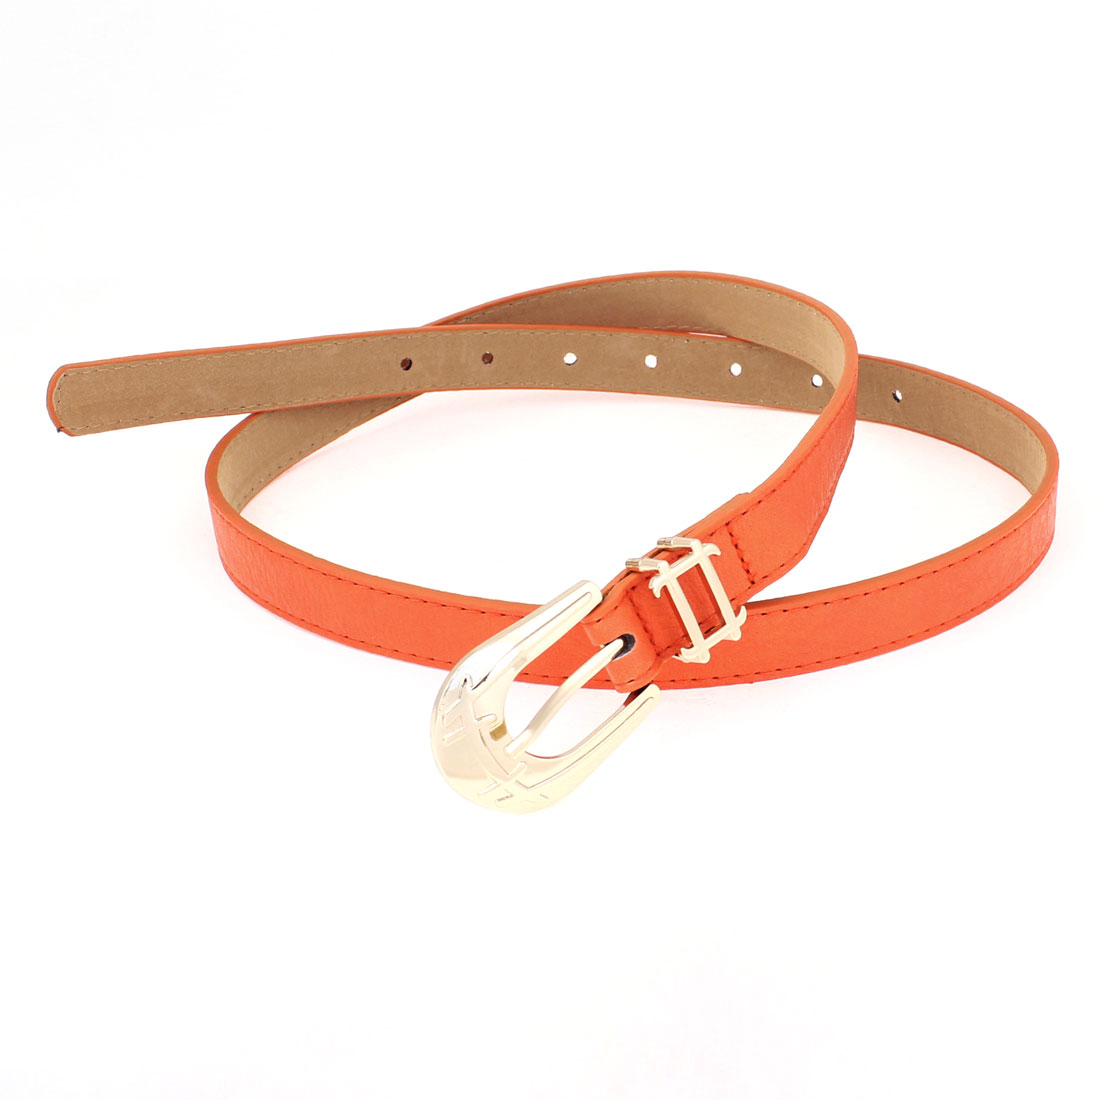 Ladies Single Pin Buckle Orange Faux Leather Adjustable Slender Waist Belt